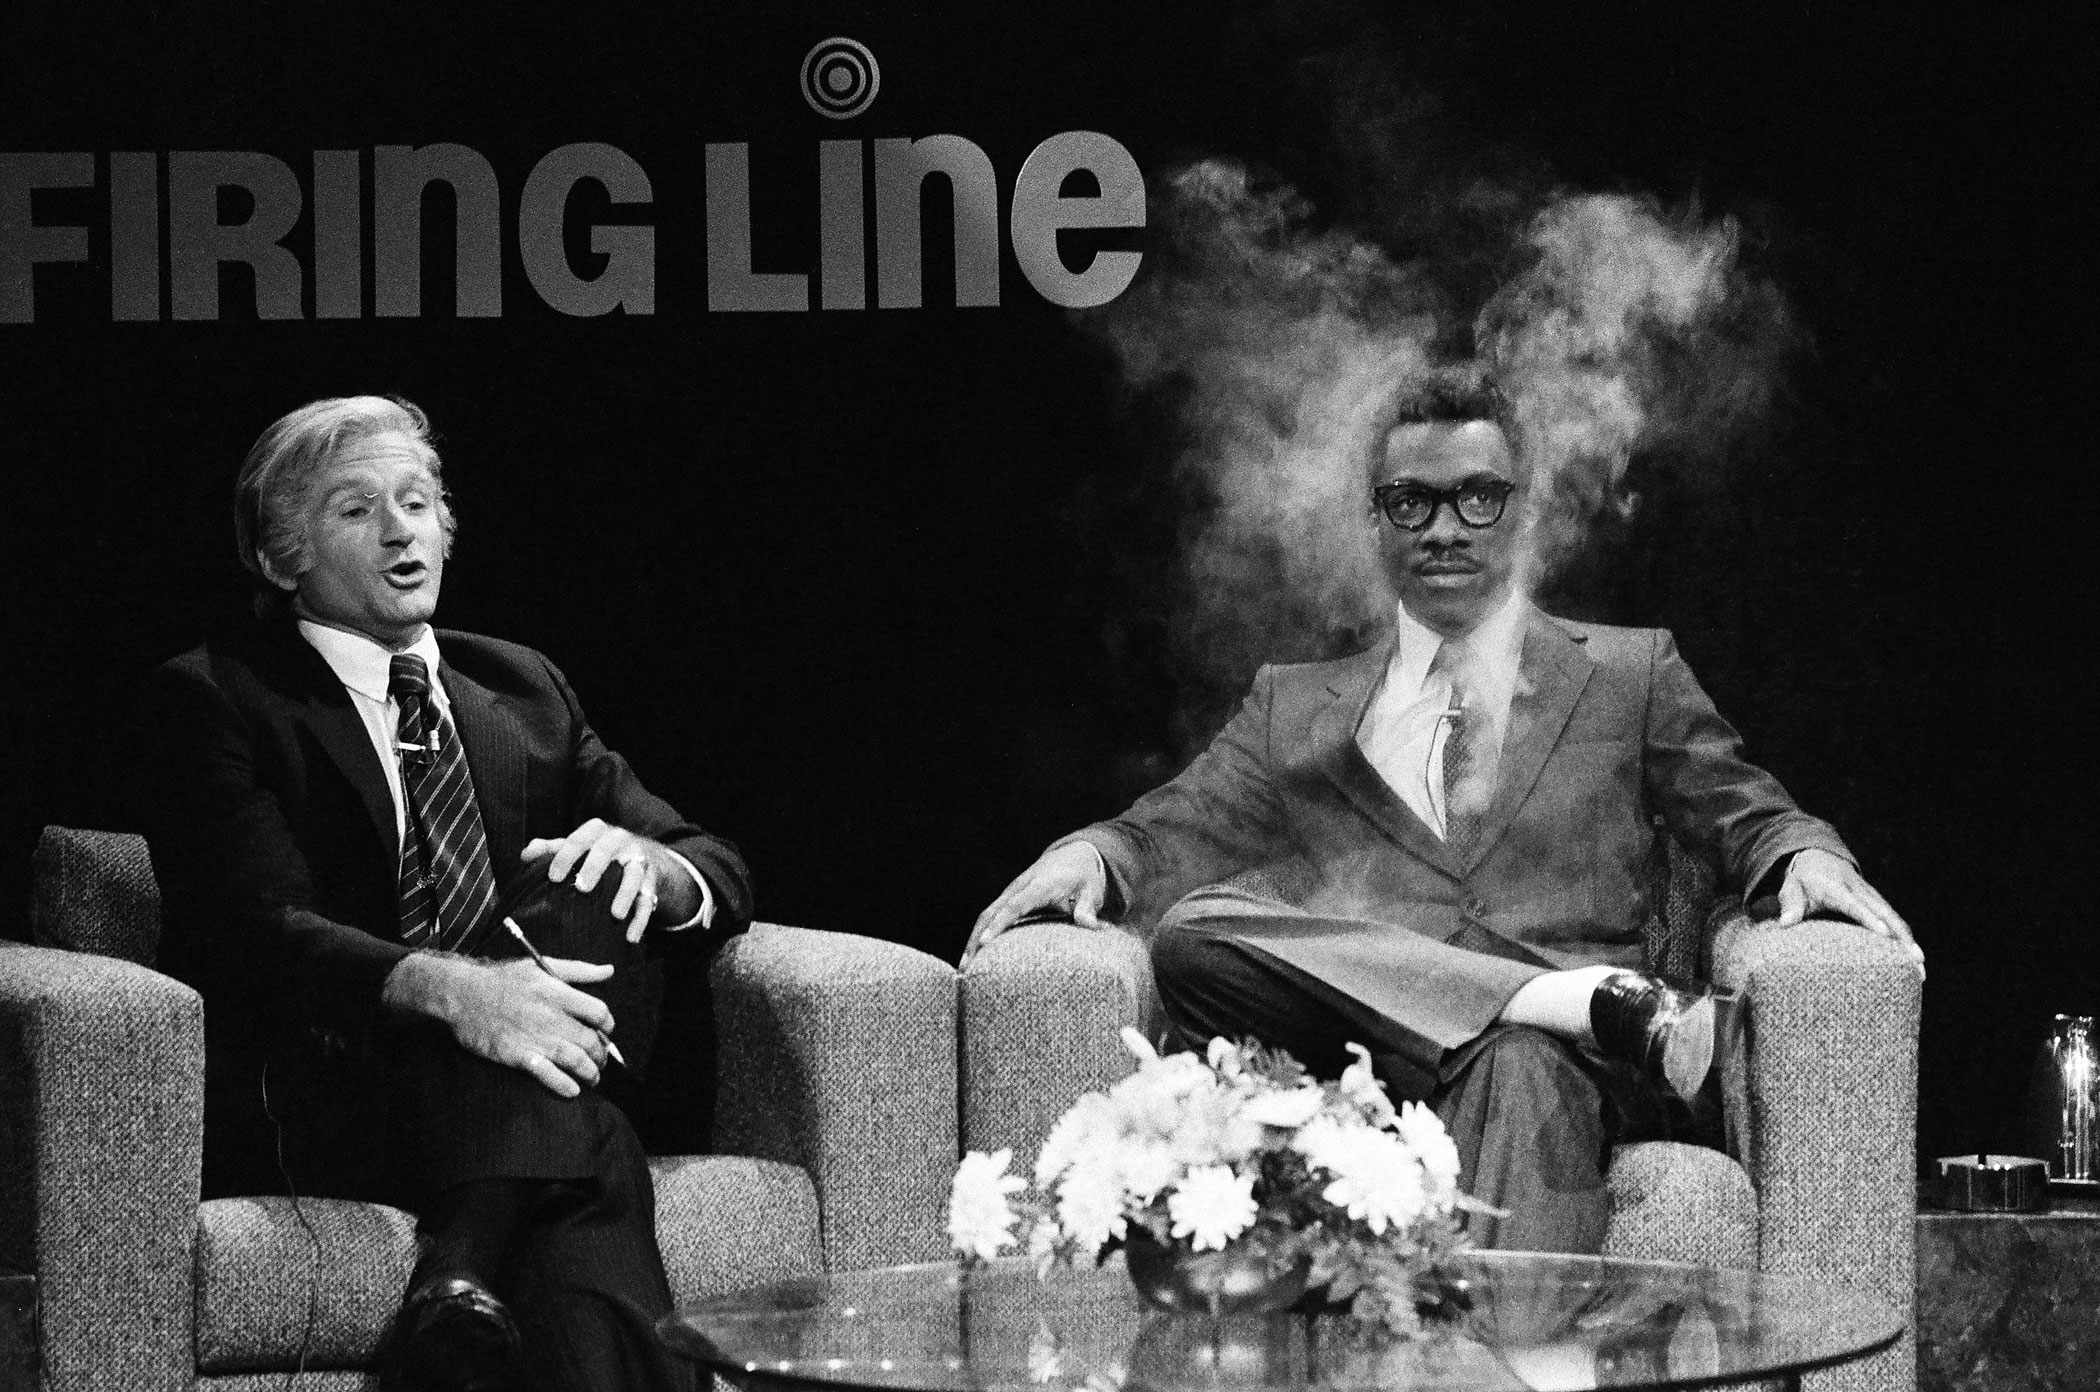 Robin Williams as William F. Buckley and Eddie Murphy as Dr. Phillip Holder during the 'Firing Line' skit on February 11, 1984.